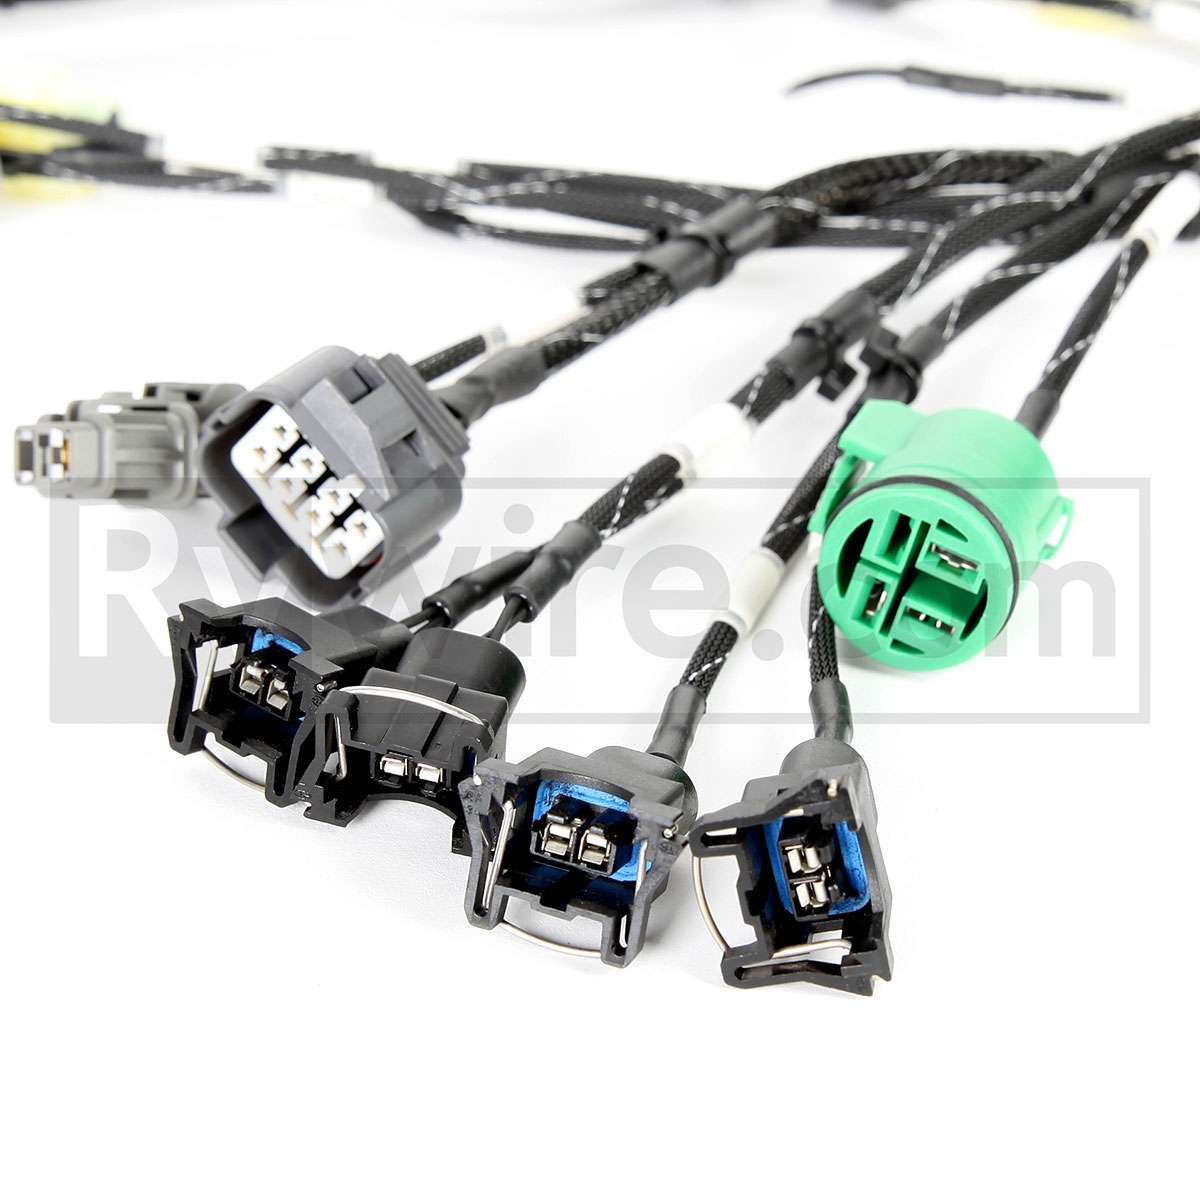 B1 Base 4?1403534211 rywire com budget d & b series tucked engine harness b16a2 wire harness for sale at edmiracle.co